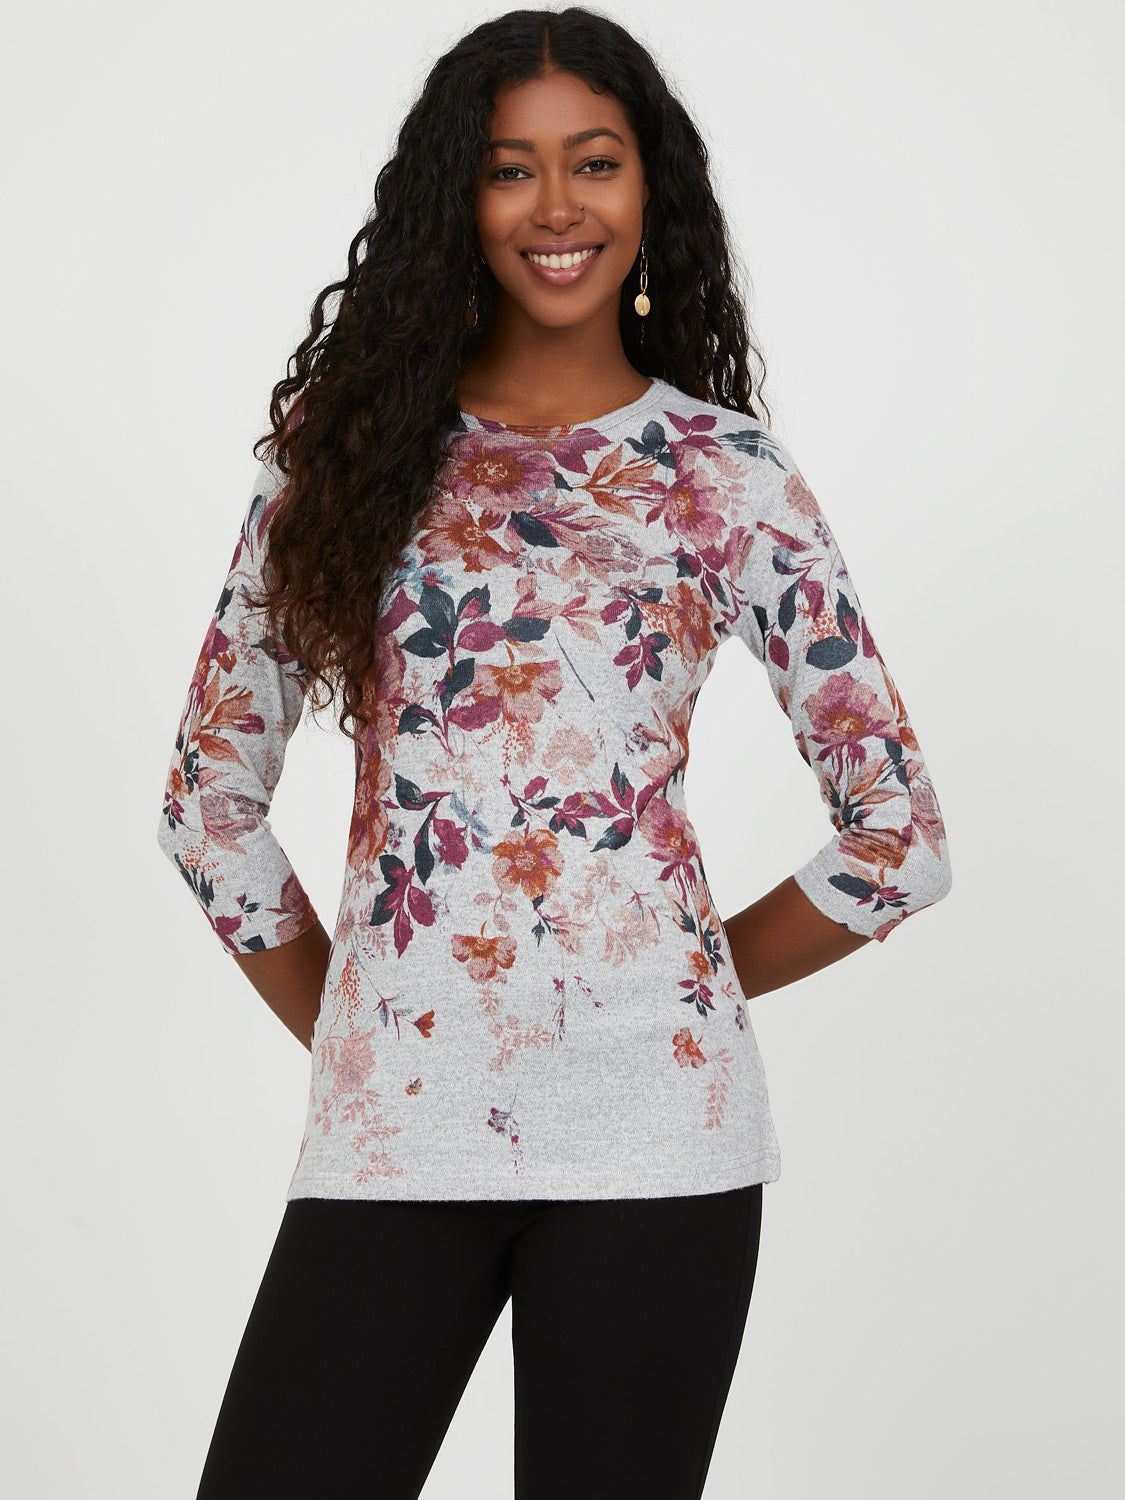 ¾ Sleeve Floral Knit Top